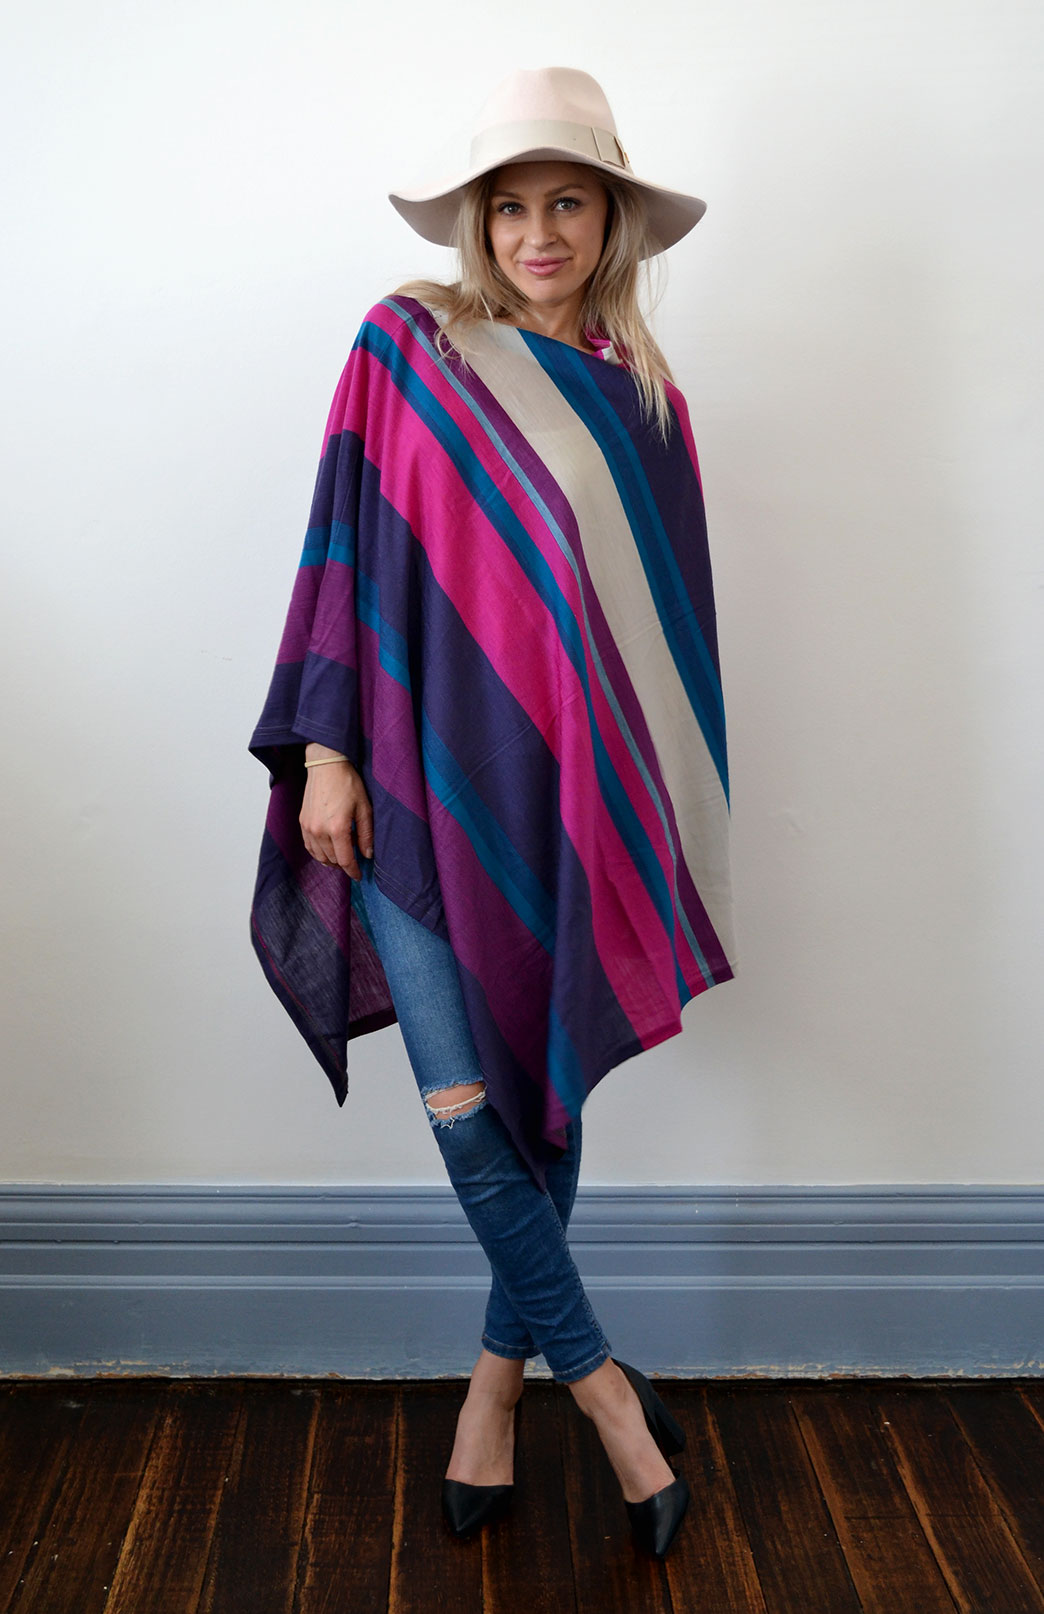 Oversized Poncho - Striped & Patterned - Women's Grape Purple Multi Striped Oversized Wool Poncho - Smitten Merino Tasmania Australia